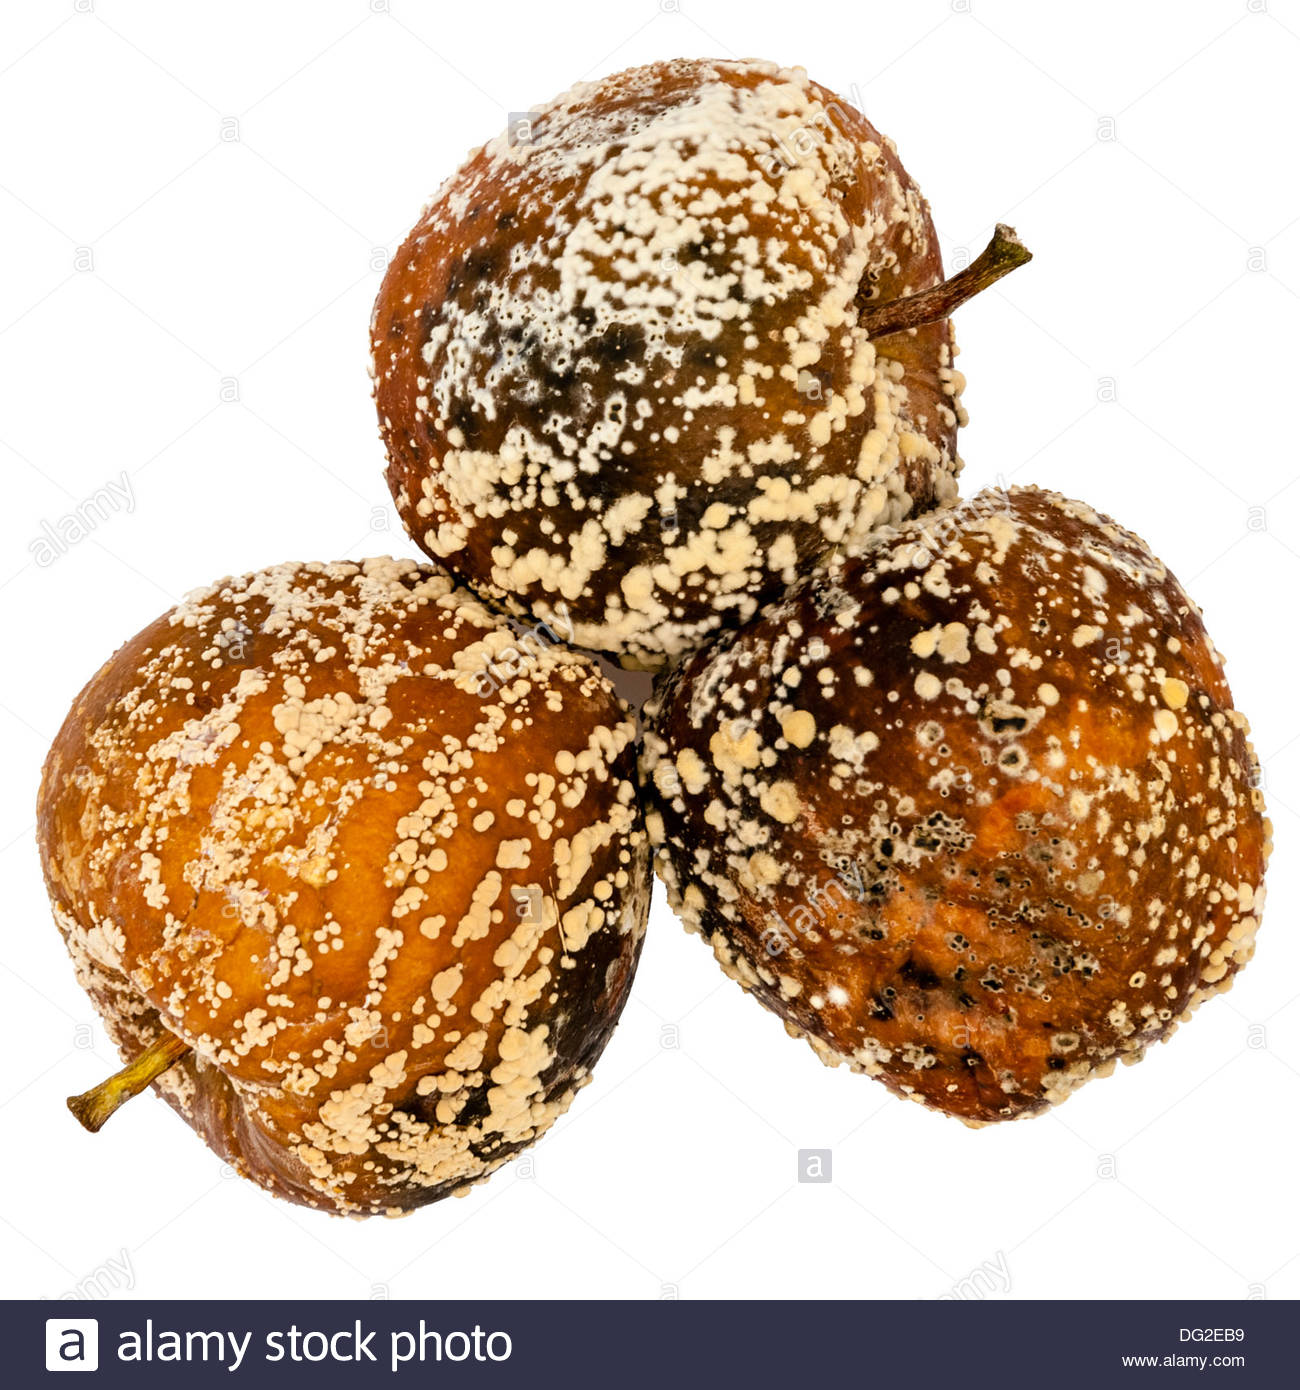 Bad apples covered in mould. Mold growing on spoiled fruit. - Stock Image